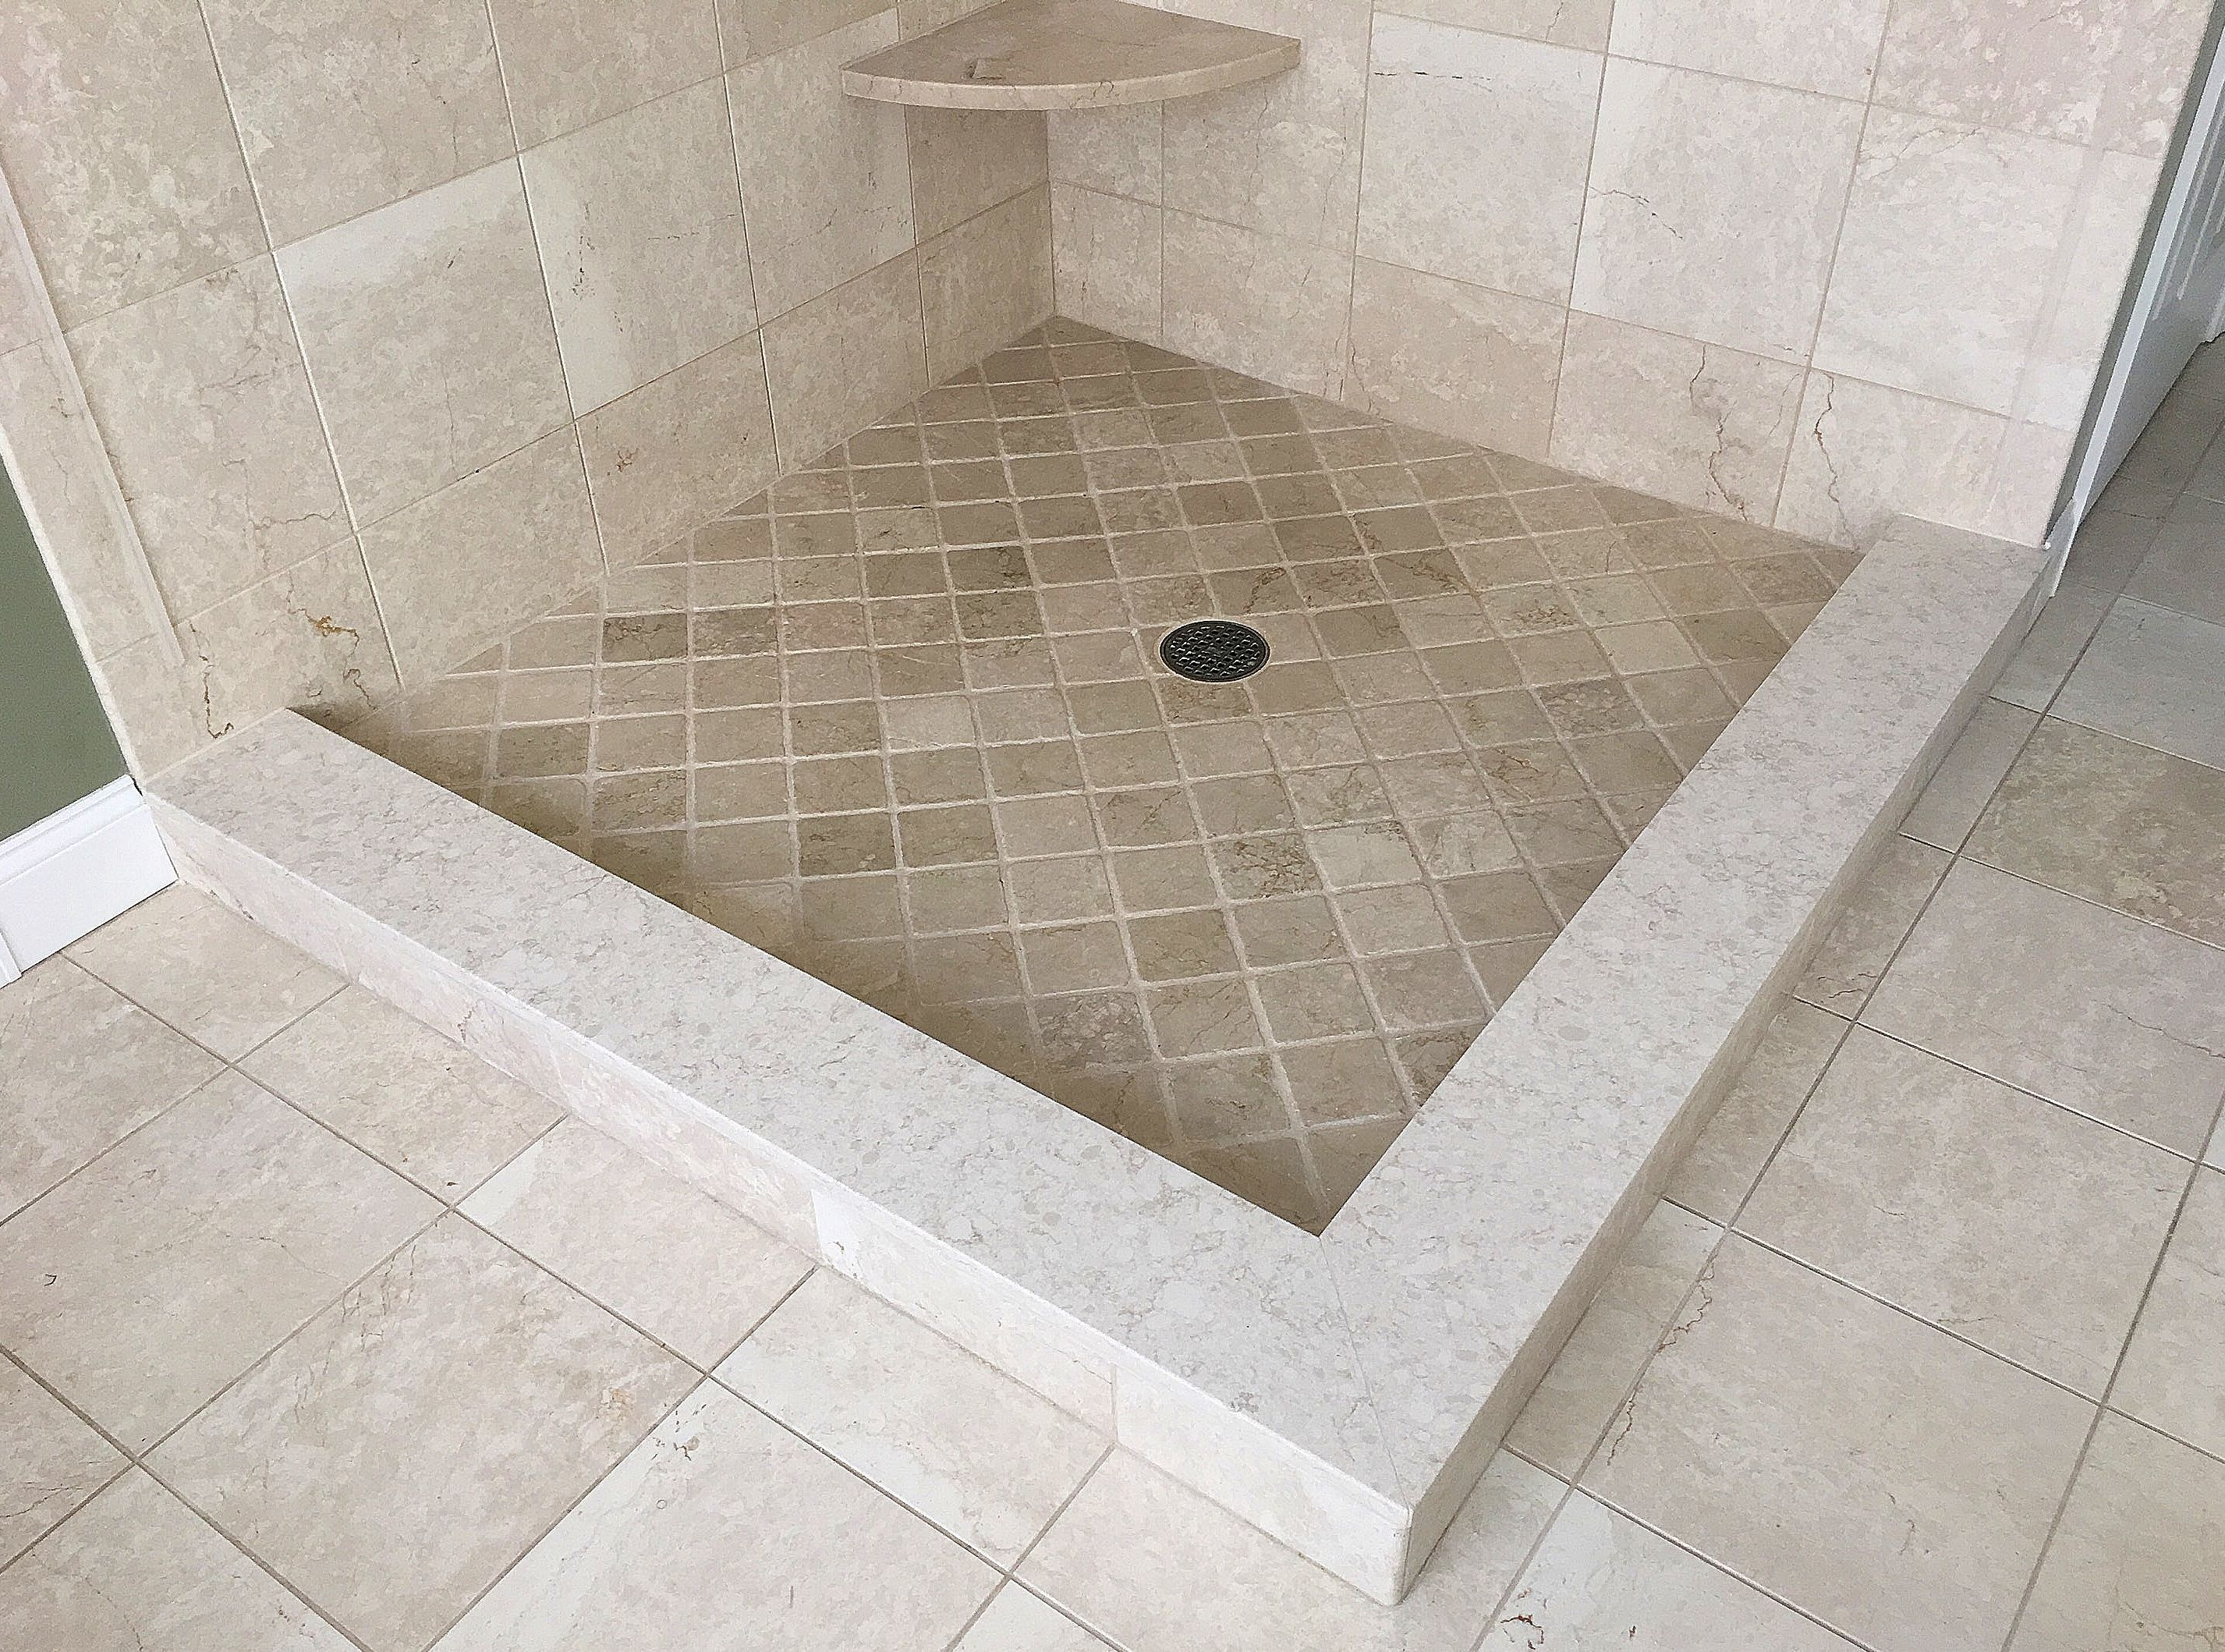 Traditional Botticino Marble Shower Floor Tile With An Engineered Zodiaq Venetia Cream Quartz Shower Curb Bathro Shower Curb Marble Bathroom Marble Showers